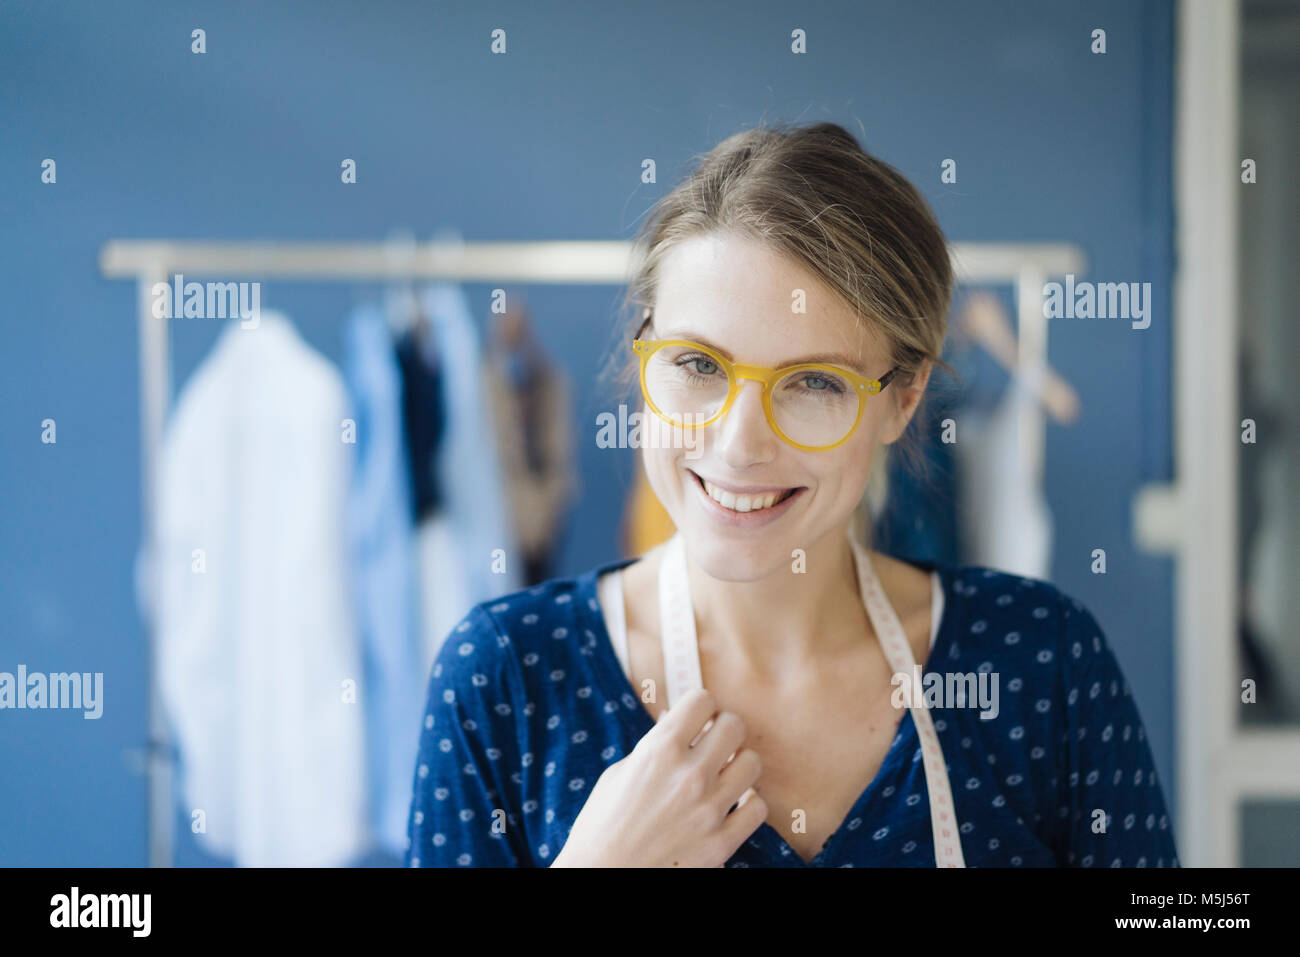 Portrait of smiling fashion designer in her studio - Stock Image